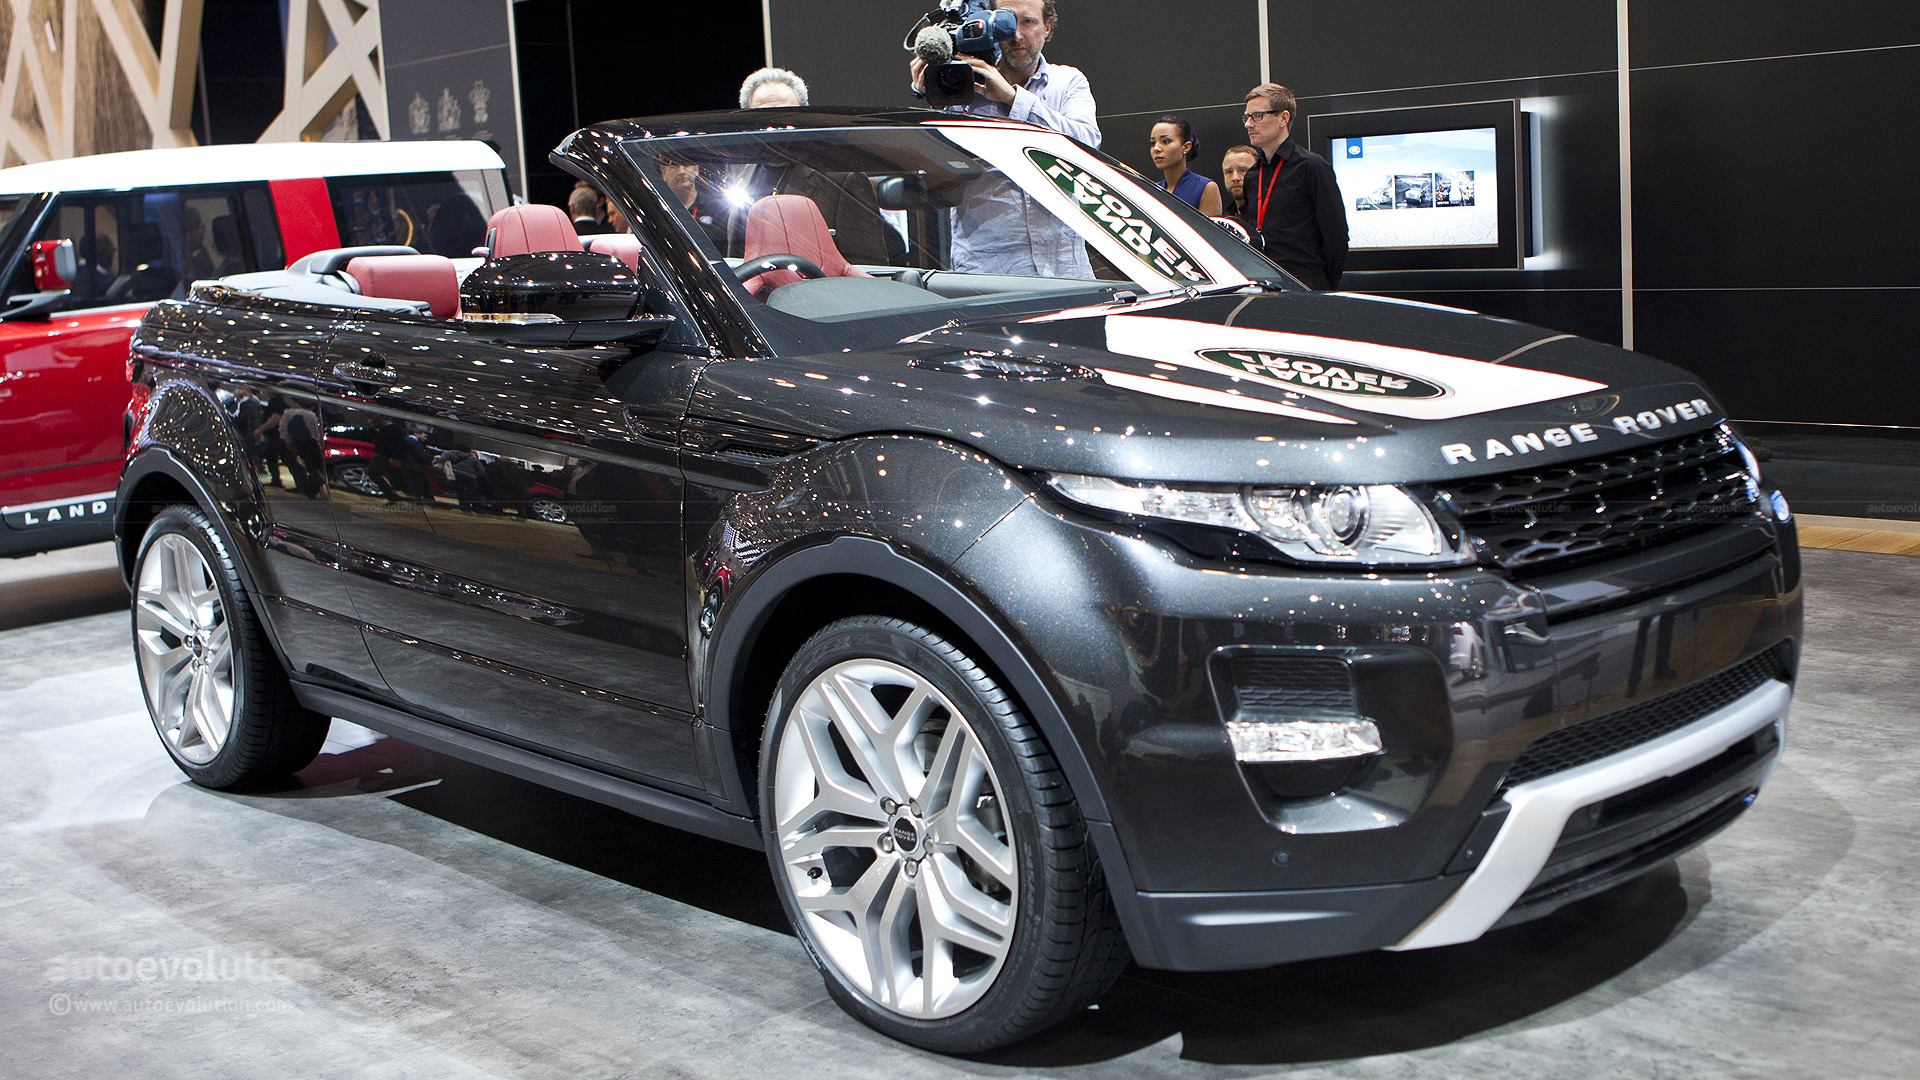 Range Rover Evoque Cabrio Could Be Ready In 2015